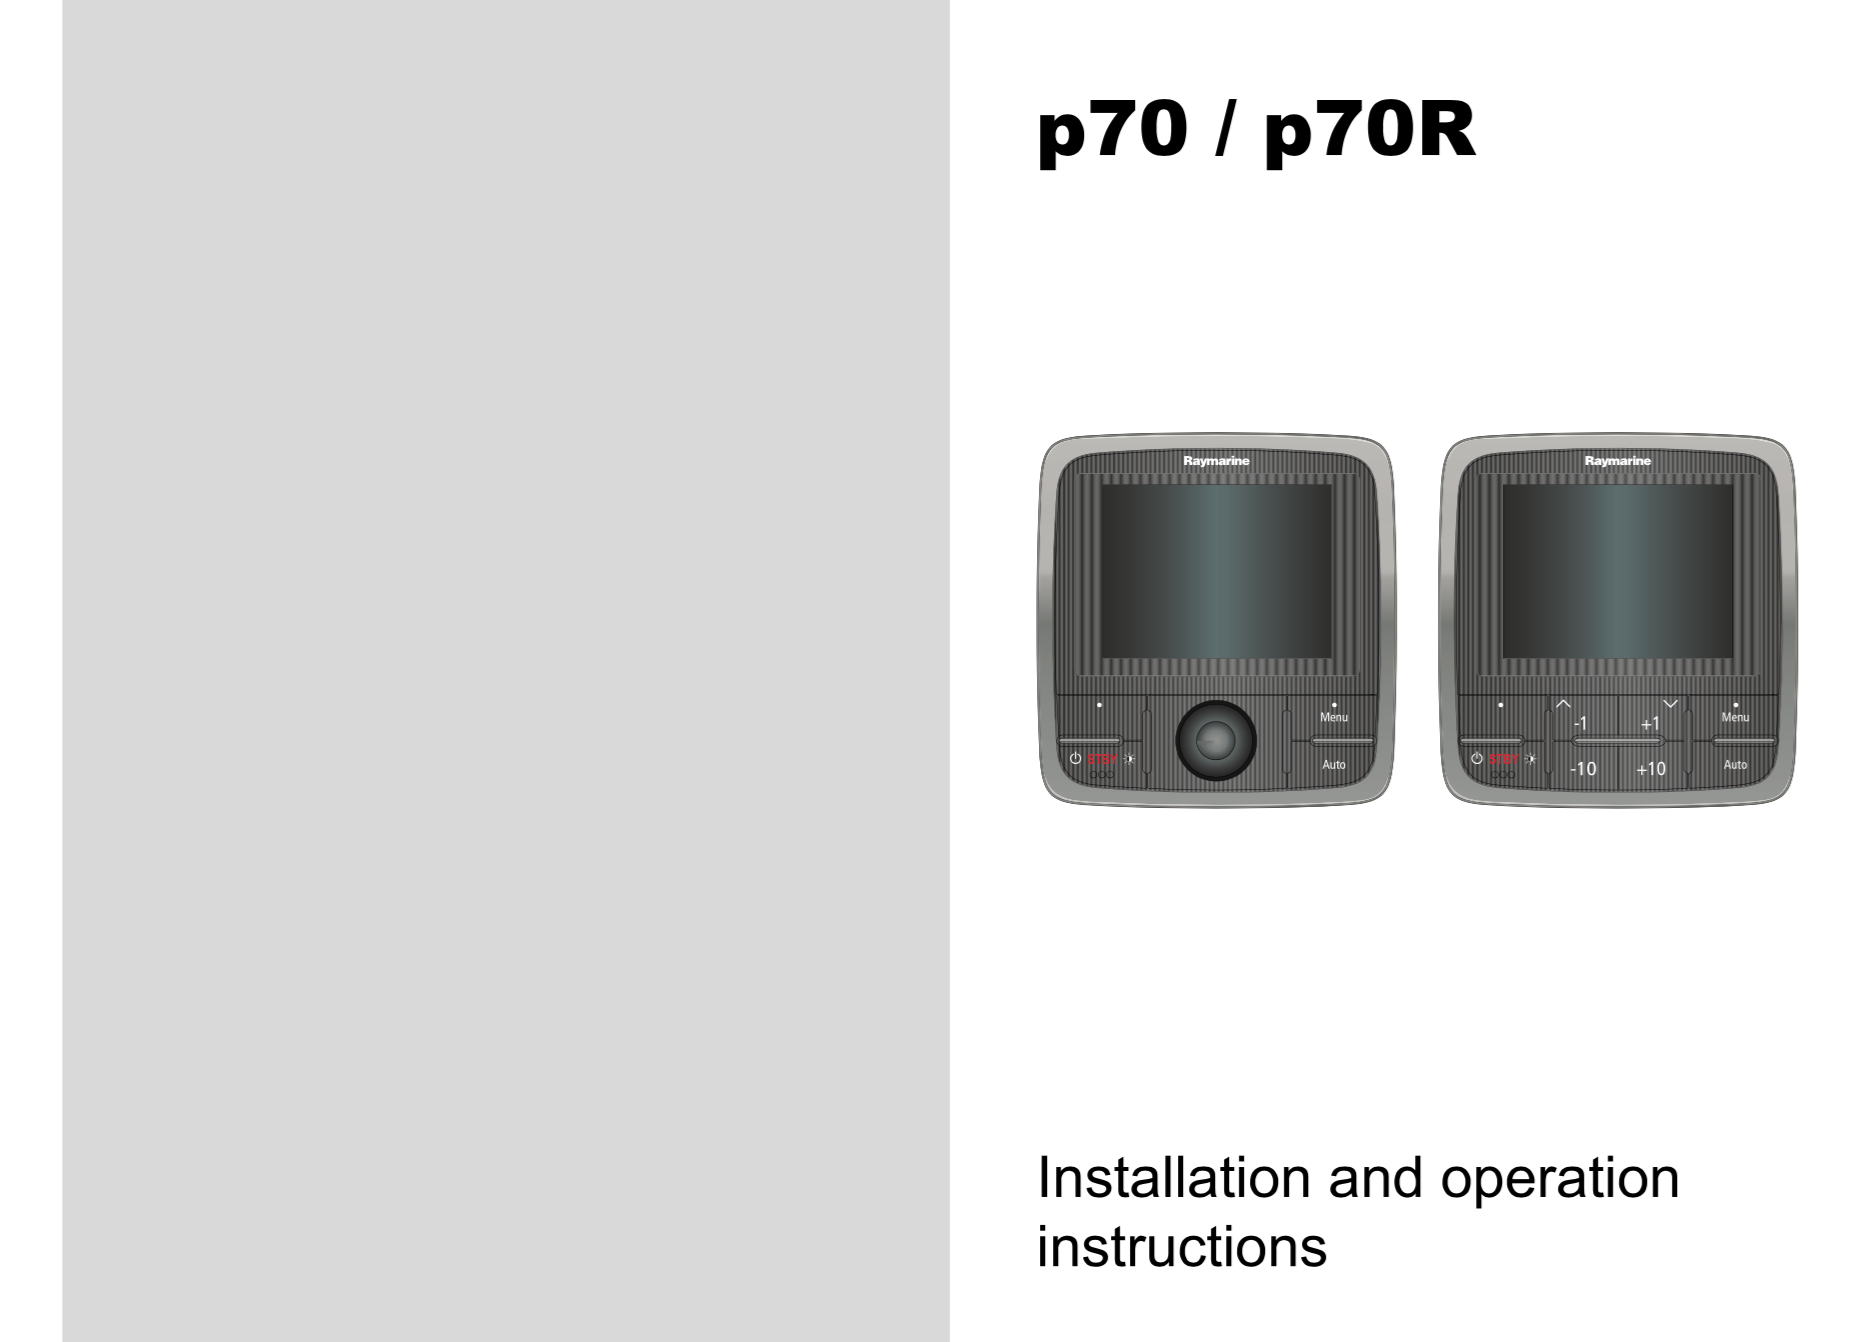 p70-p70r-installation-and-operating-instructions.png